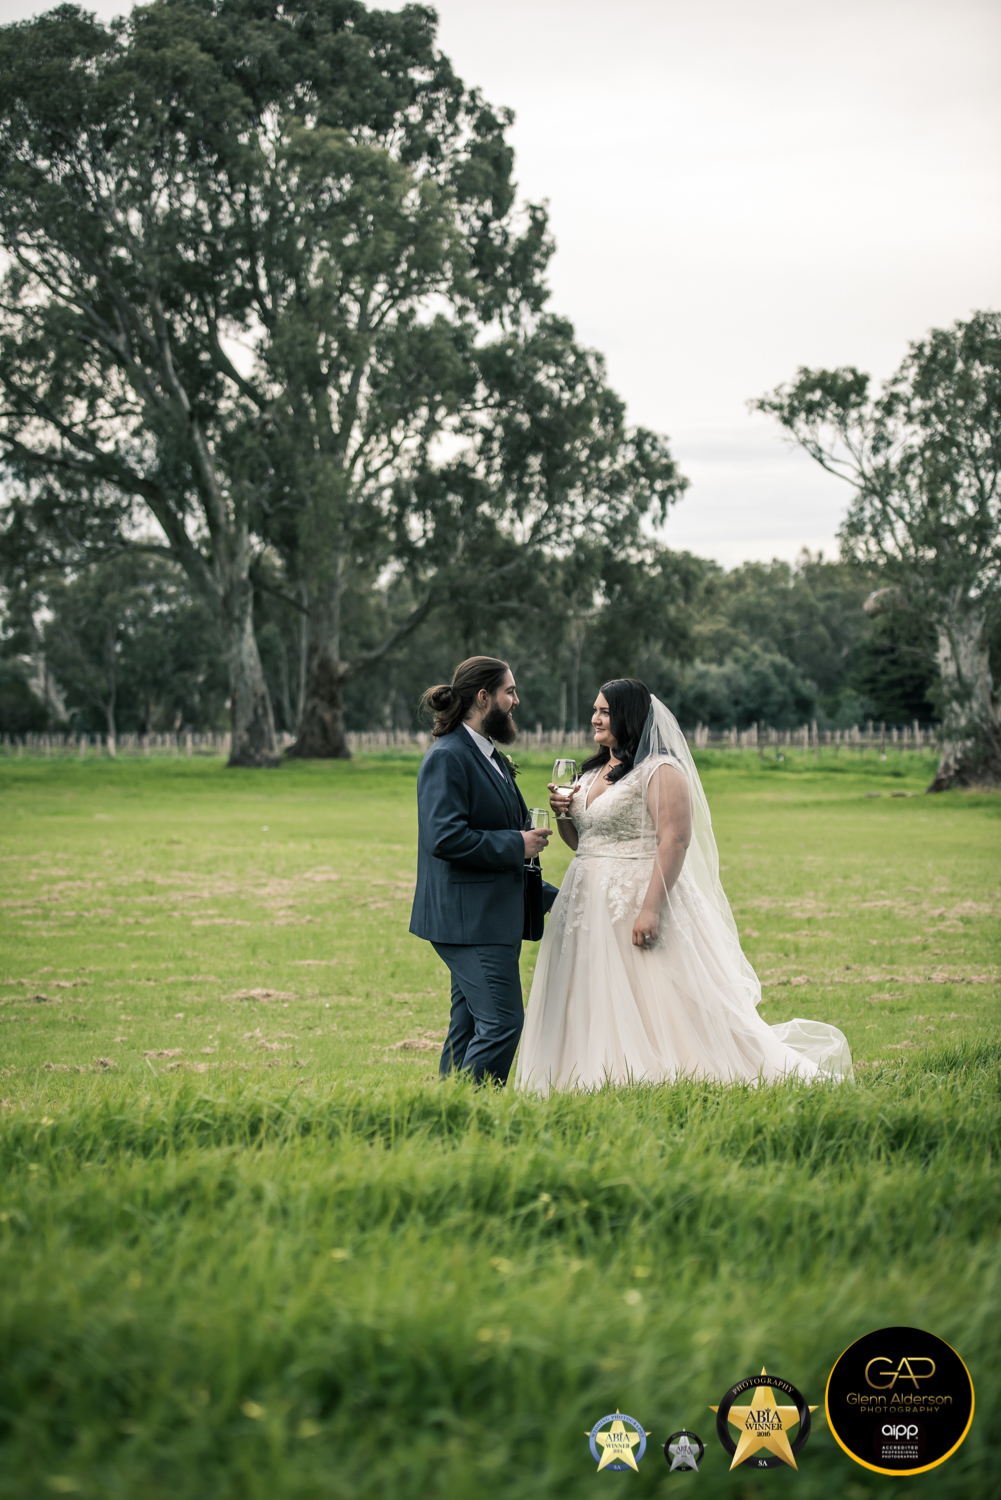 Karlee & Lachlan 01092017 WM (10 of 12)